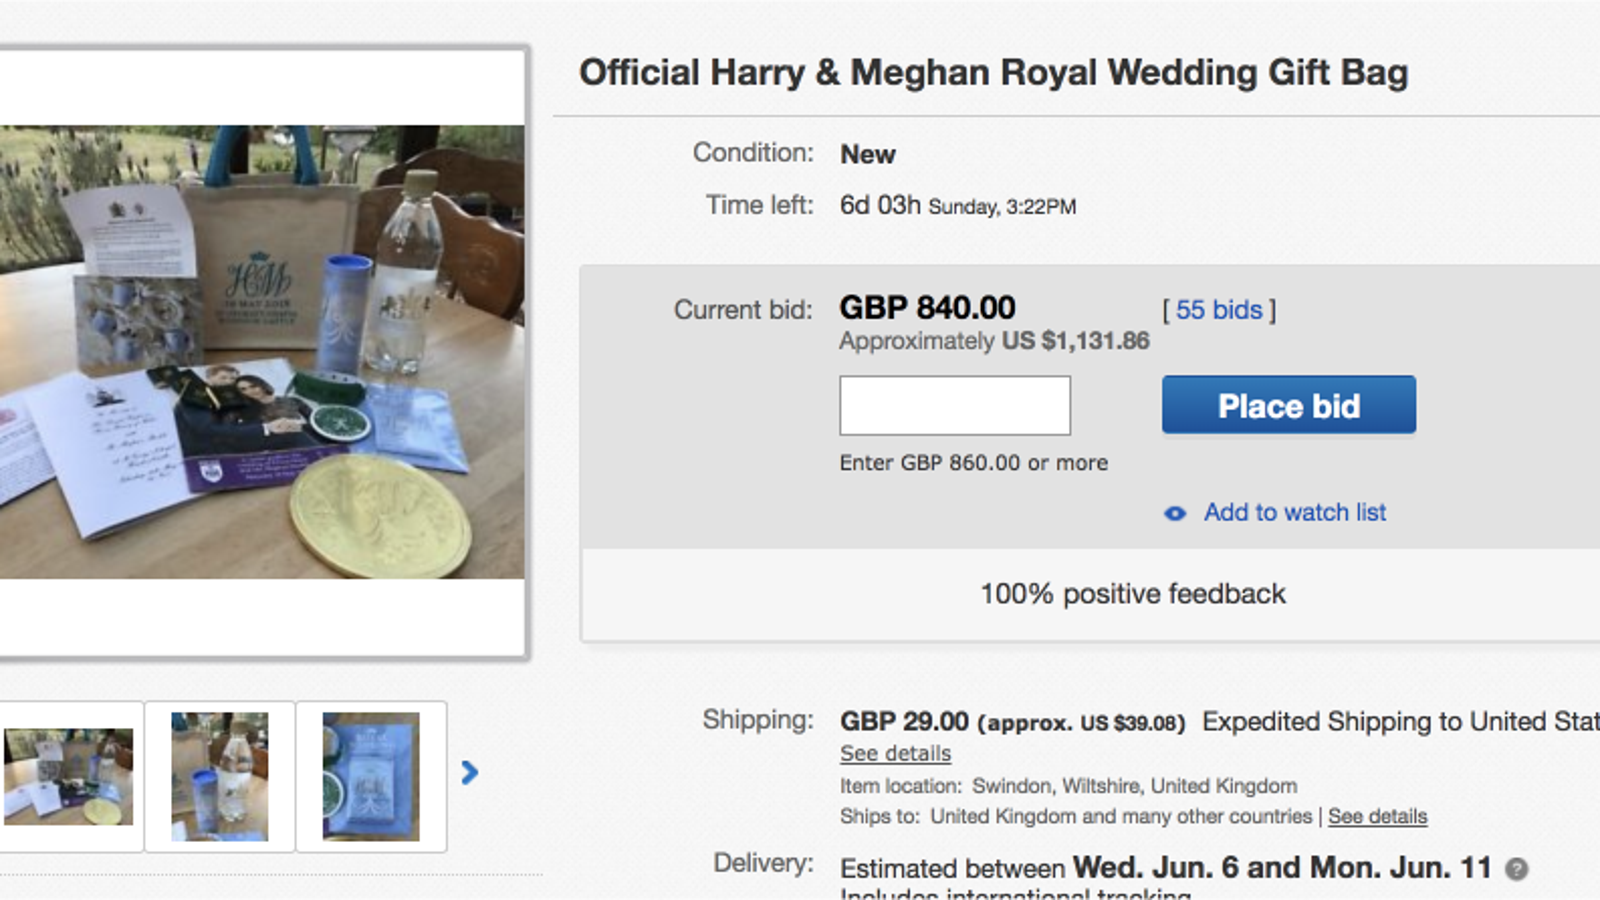 you can buy an overpriced bag of garbage from the royal wedding on ebay